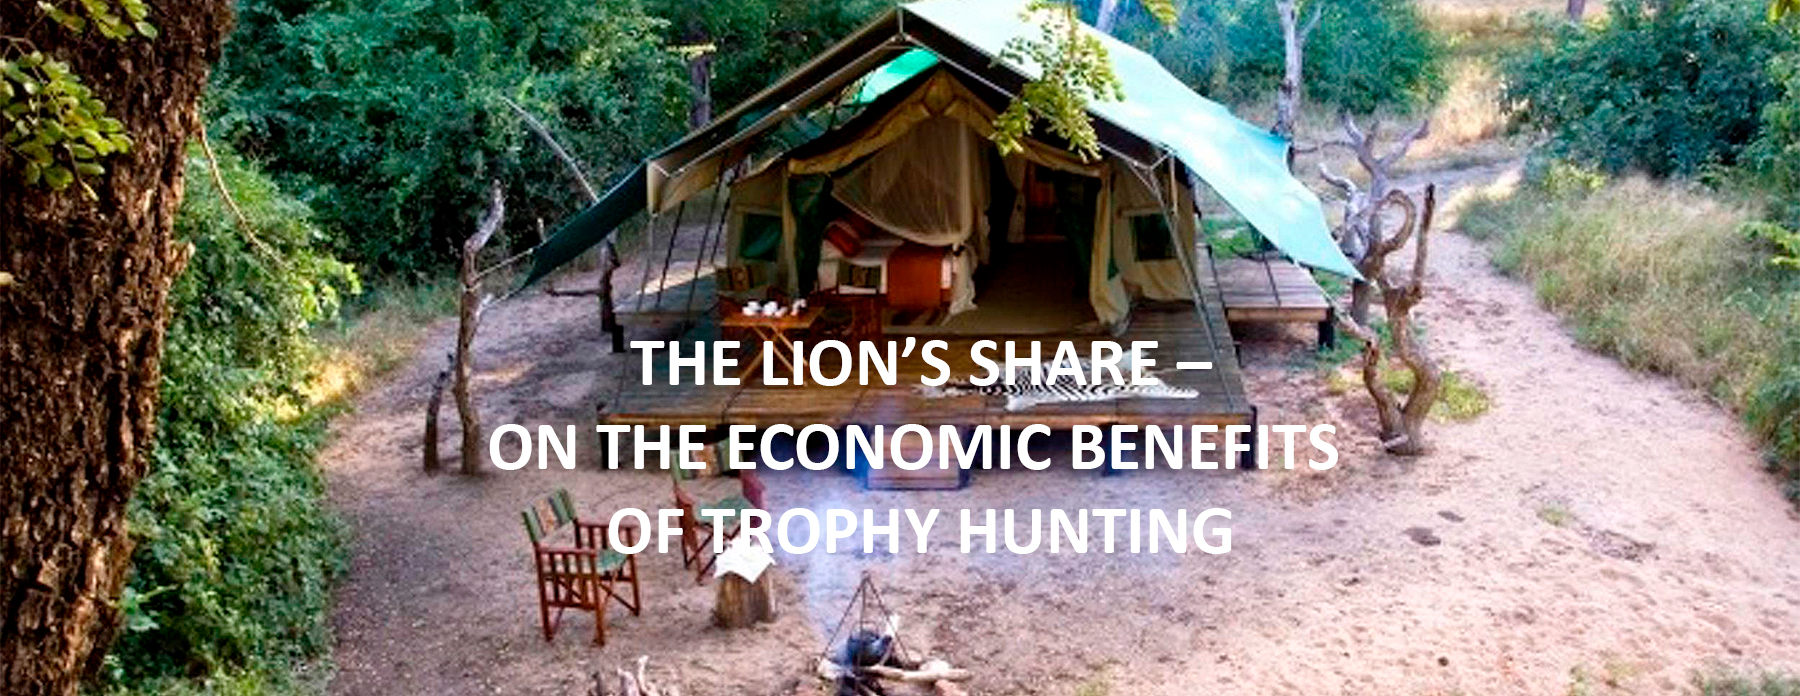 The Lion's Share? On The Economic Benefits Of Trophy Hunting <br> February 2017, Volume 15-1